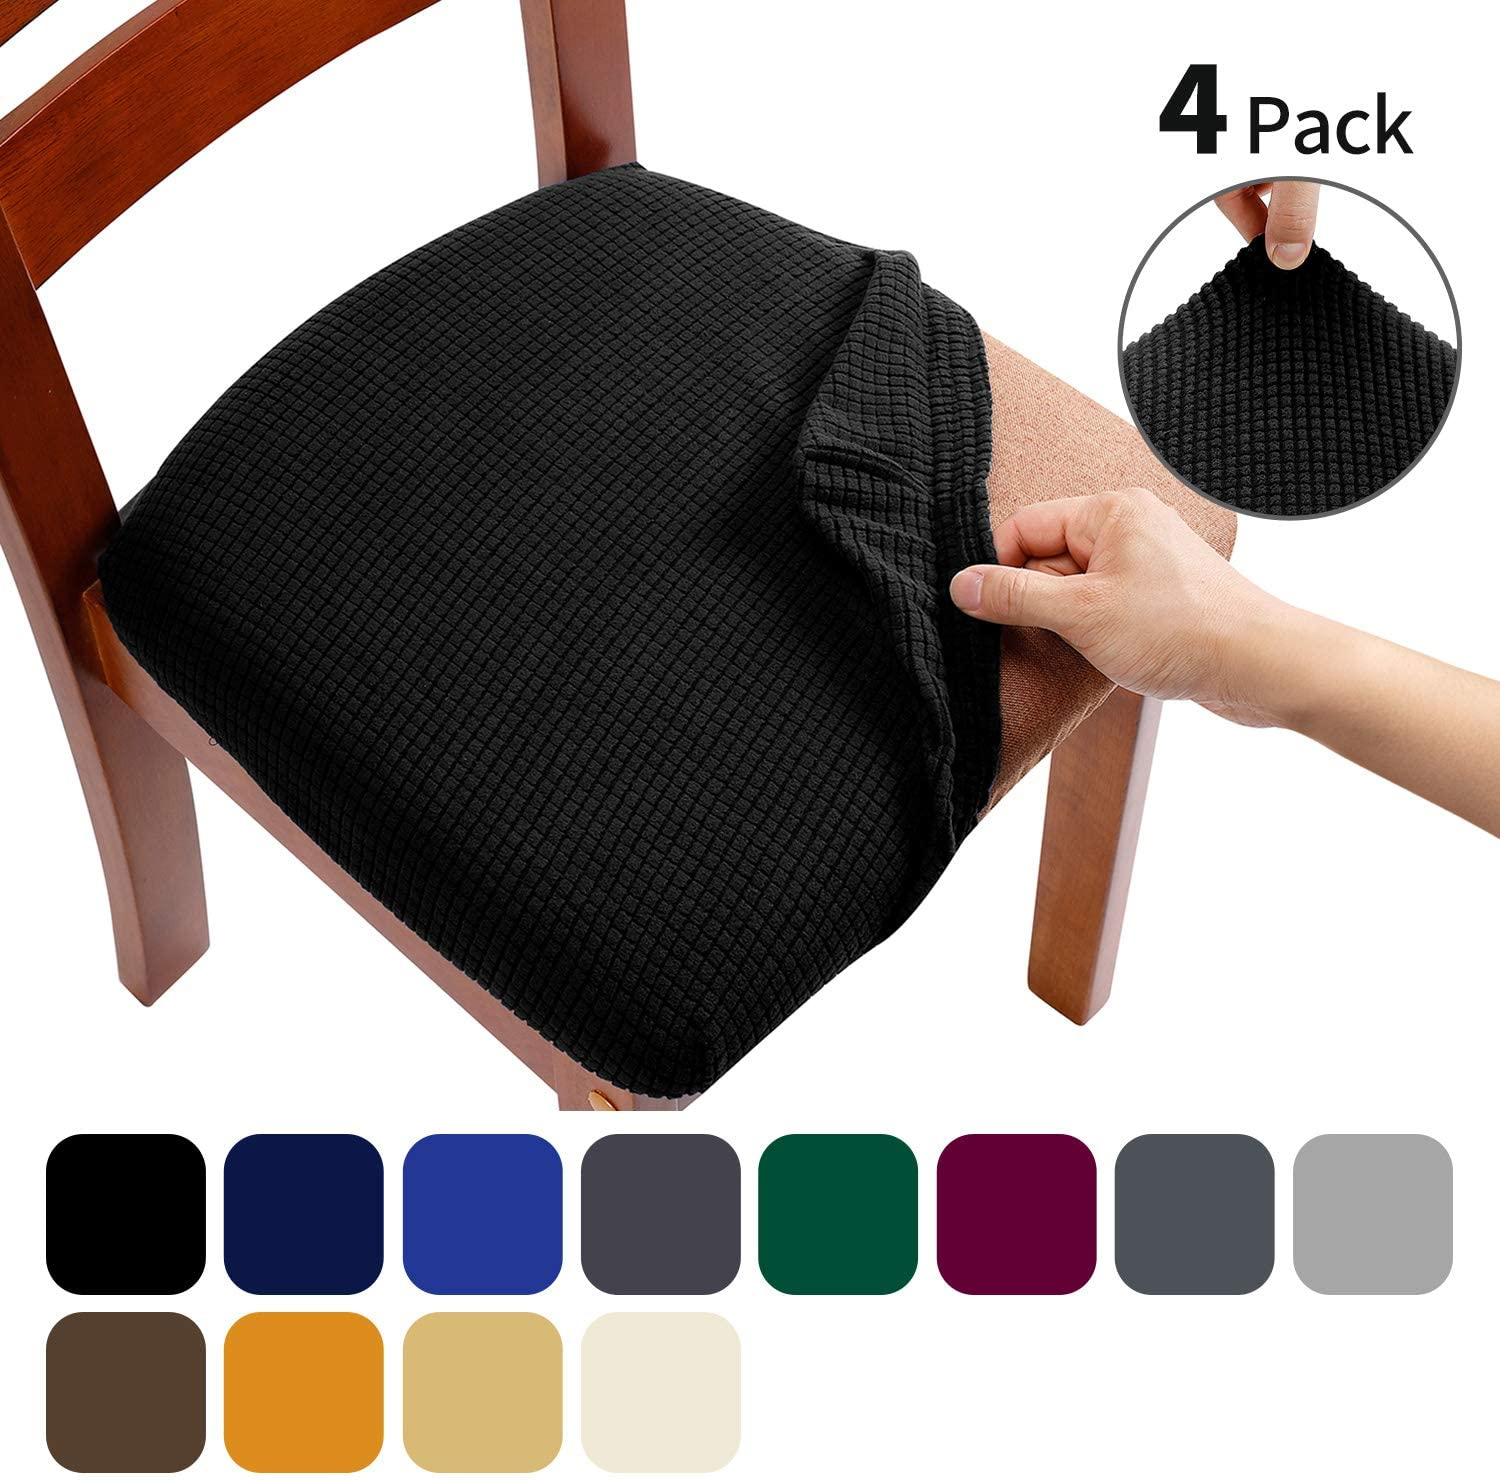 AlGaiety Dining Chair Covers, Chair Slipcovers for Dining Room, Stretch Jacquard Dining Chairs Covers Set of 4, Removable Washable Anti-Dust Chair Seat Covers, Seat Covers for Chairs, Black